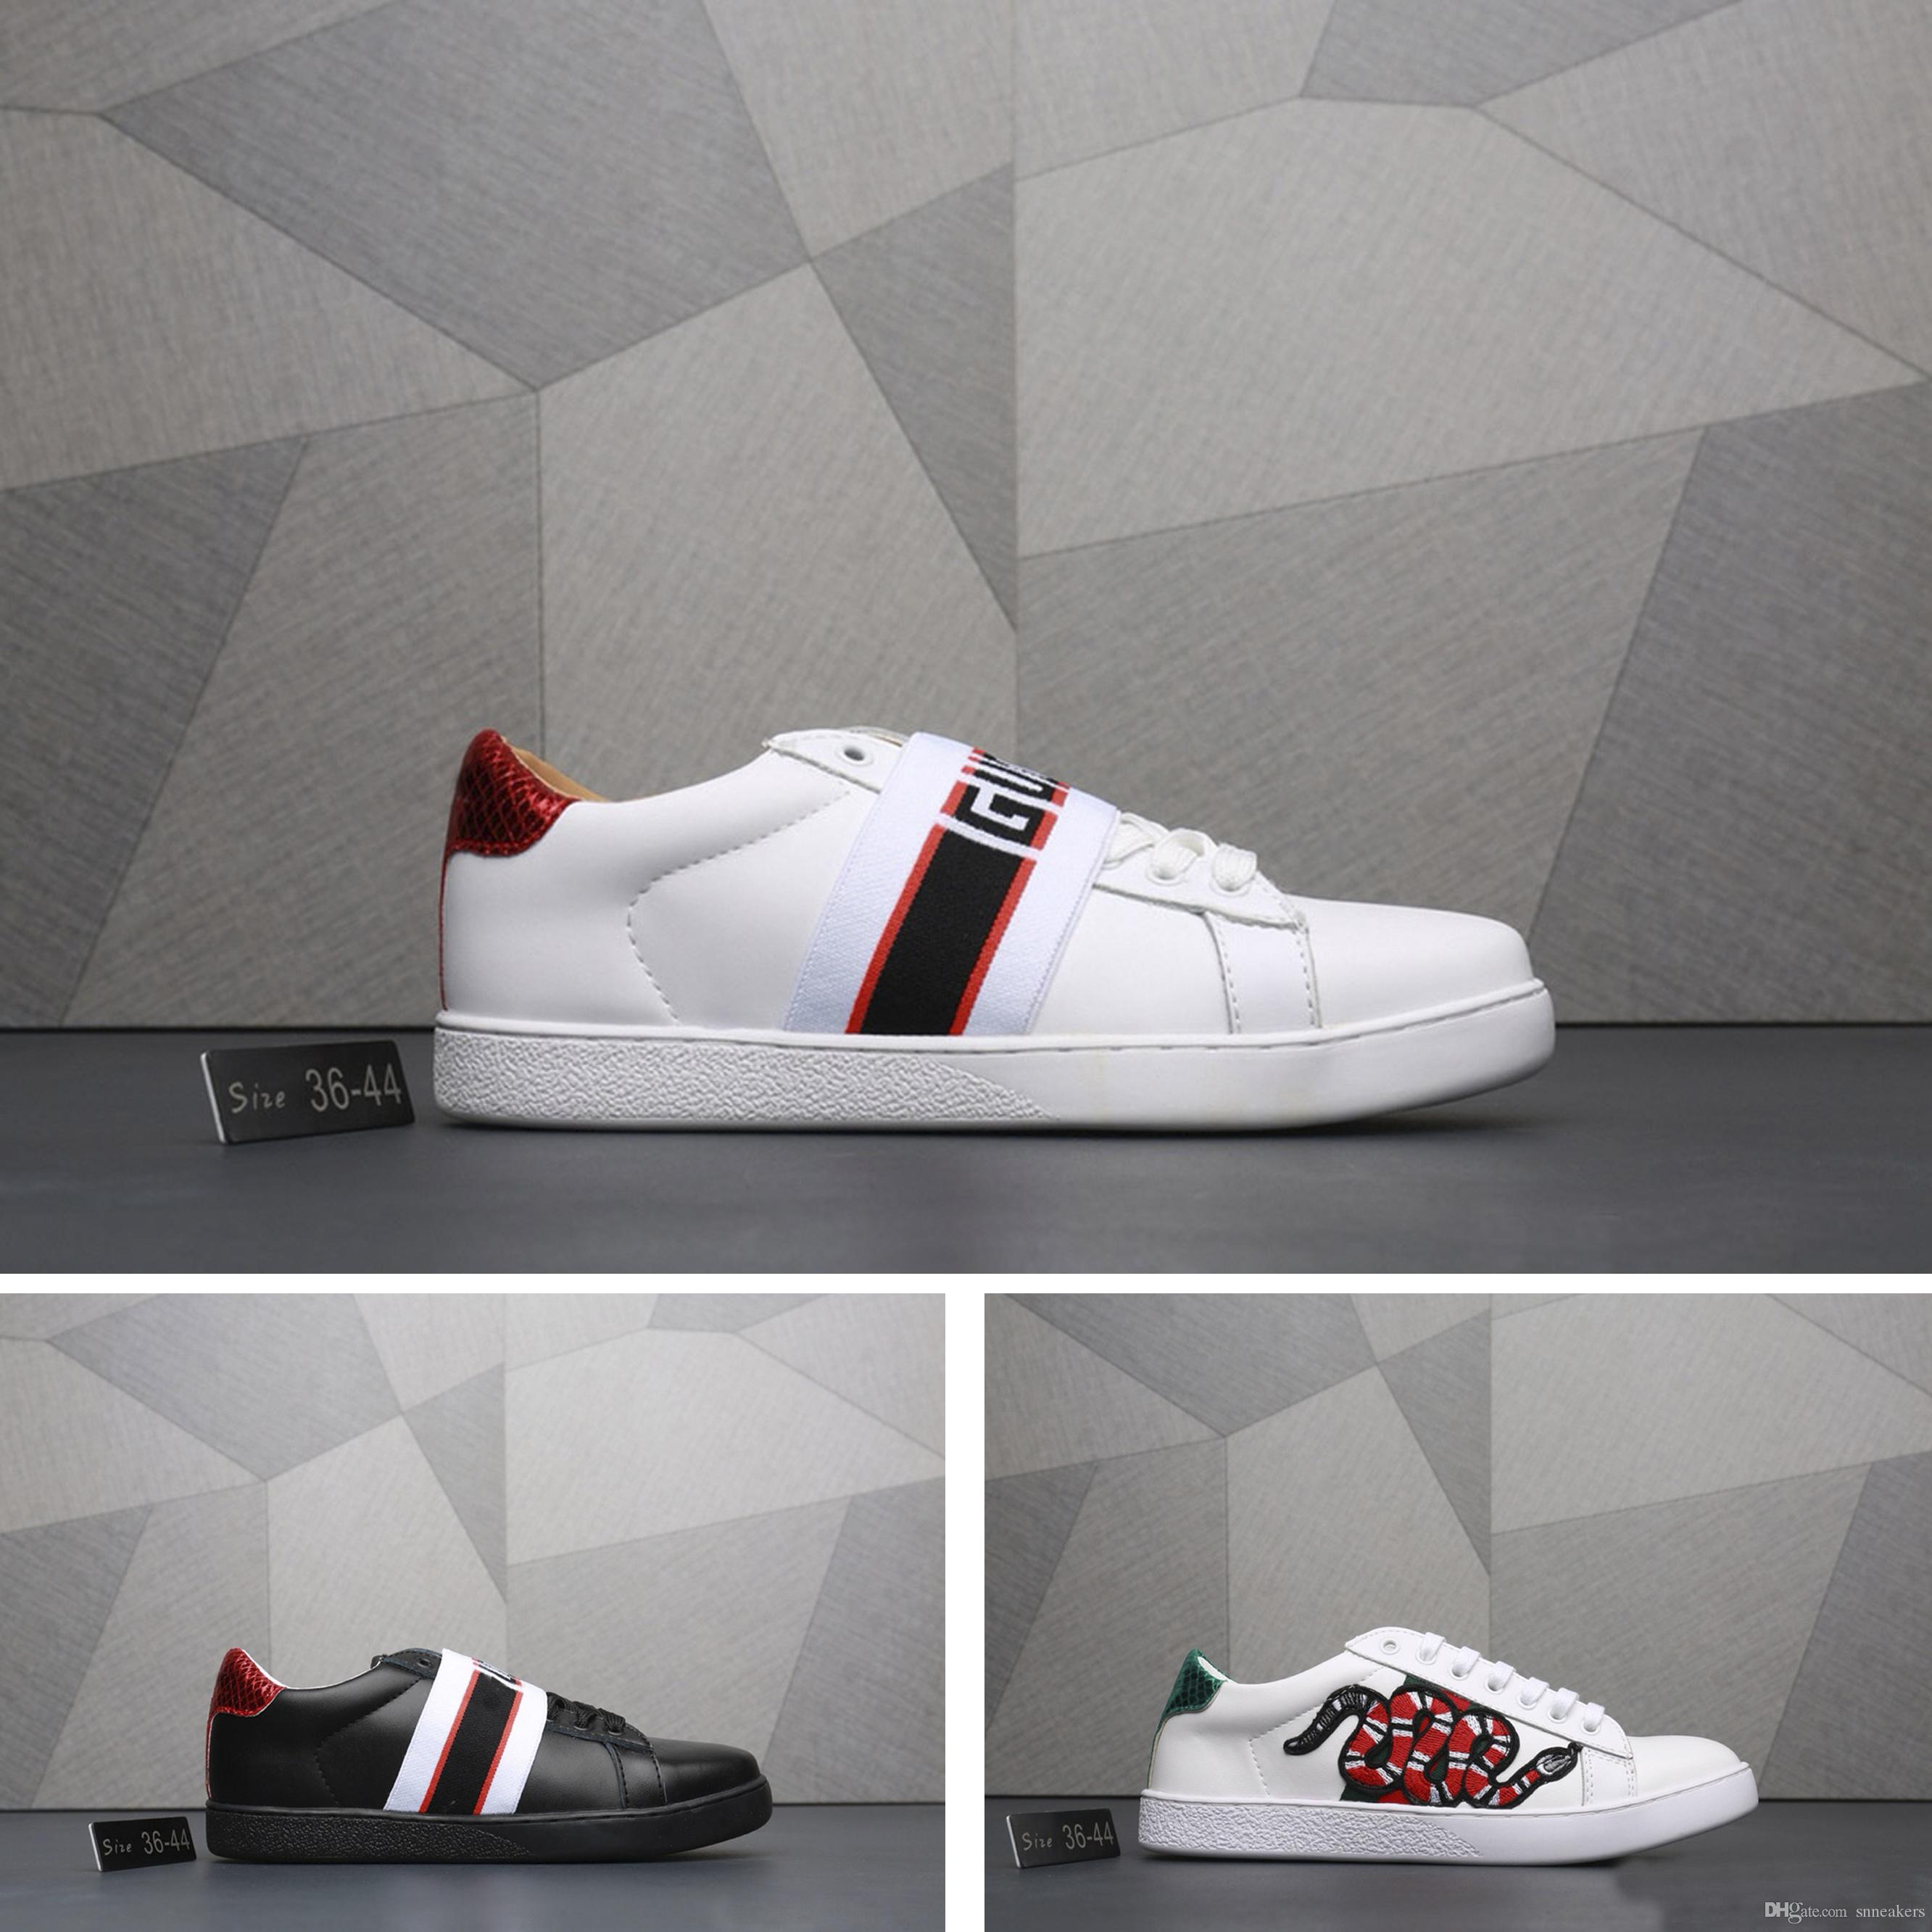 chaussures gucci sportif pas cher,gucci magasin courir